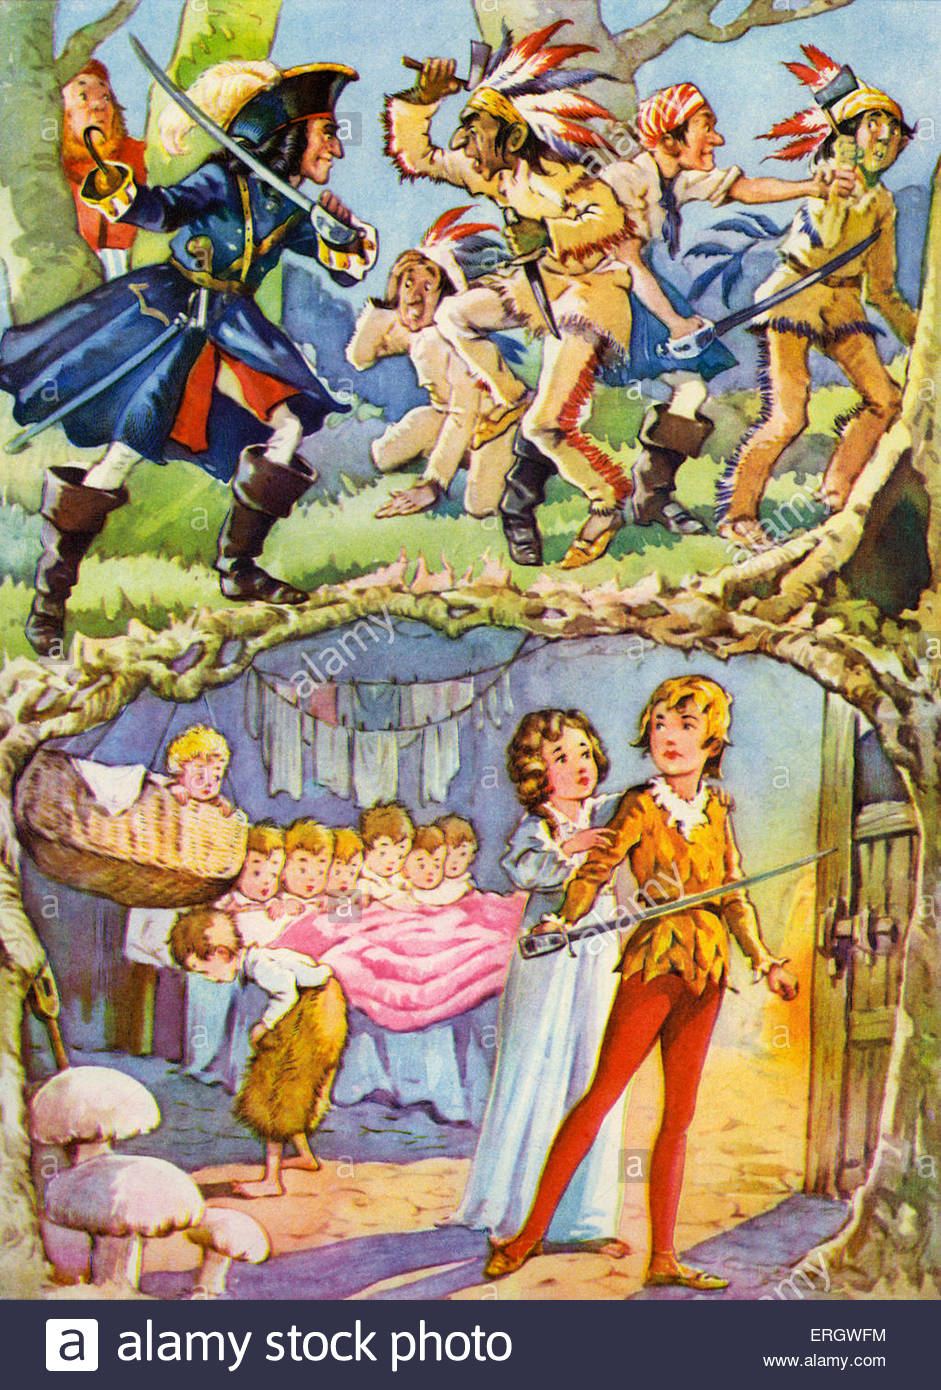 Peter pan and wendy by james matthew barrie redskins attacked by captain ergwfm